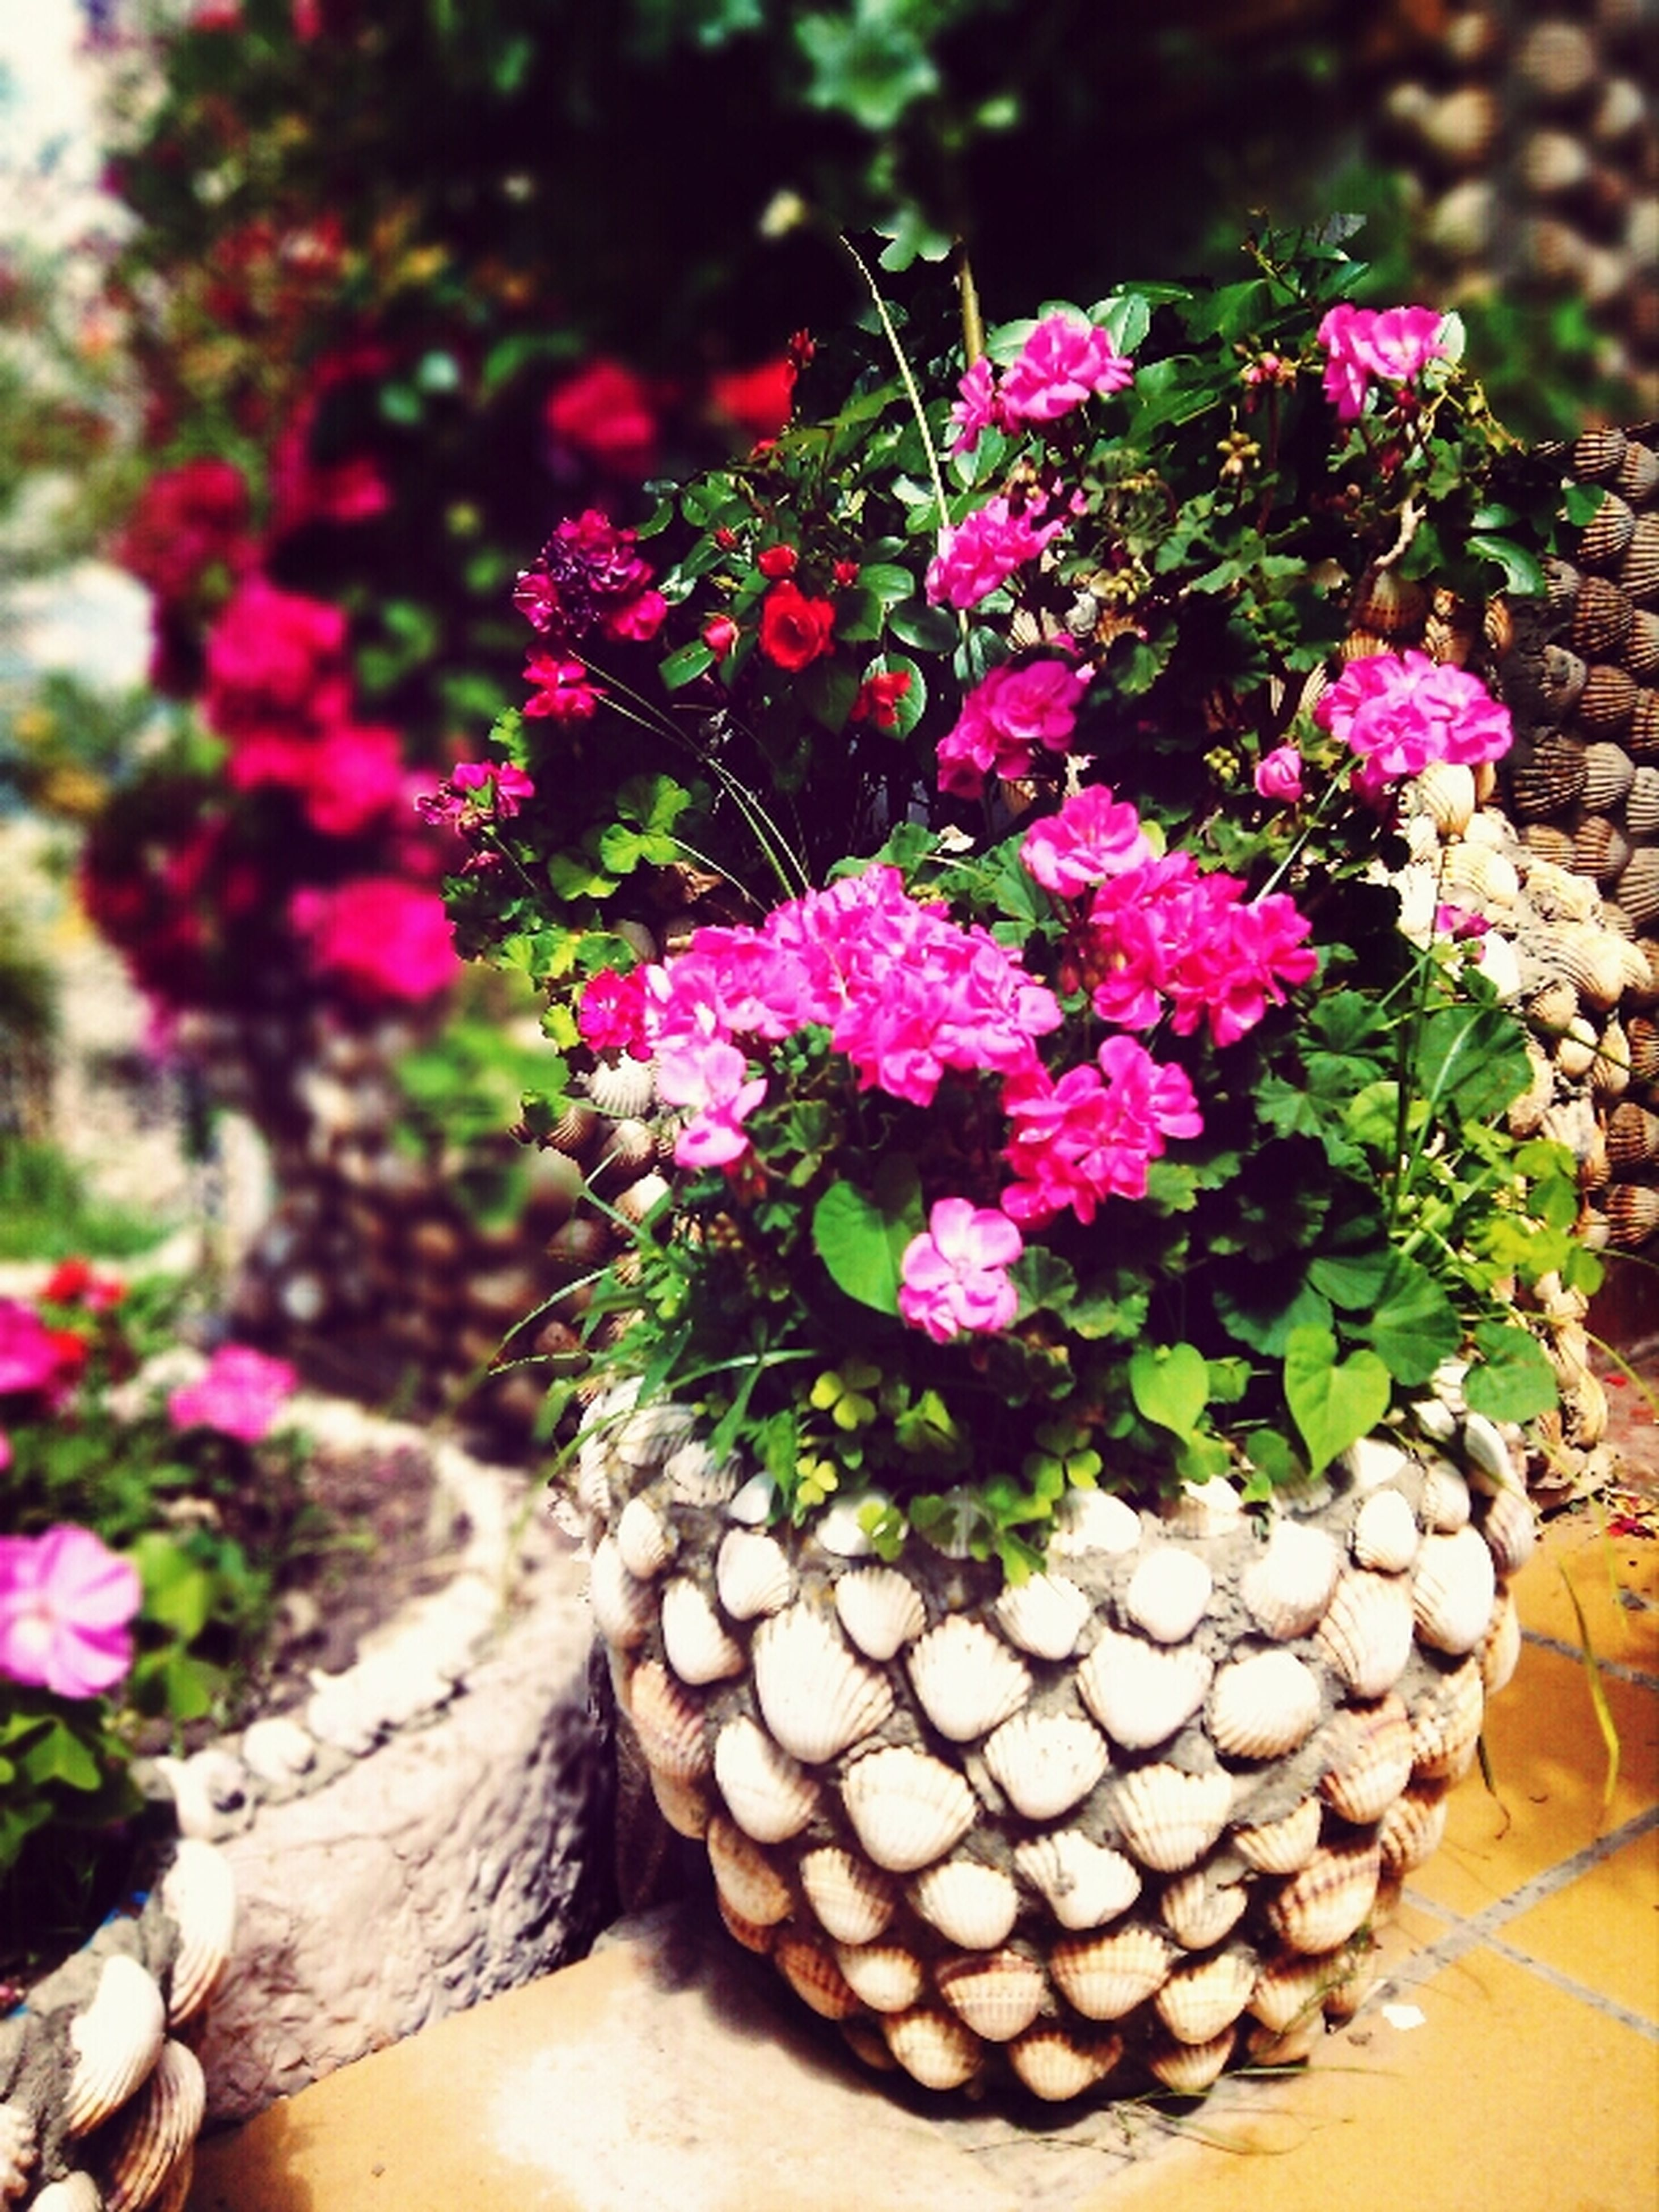 flower, freshness, growth, fragility, plant, beauty in nature, petal, nature, pink color, focus on foreground, close-up, flower head, blooming, outdoors, leaf, day, in bloom, purple, no people, botany